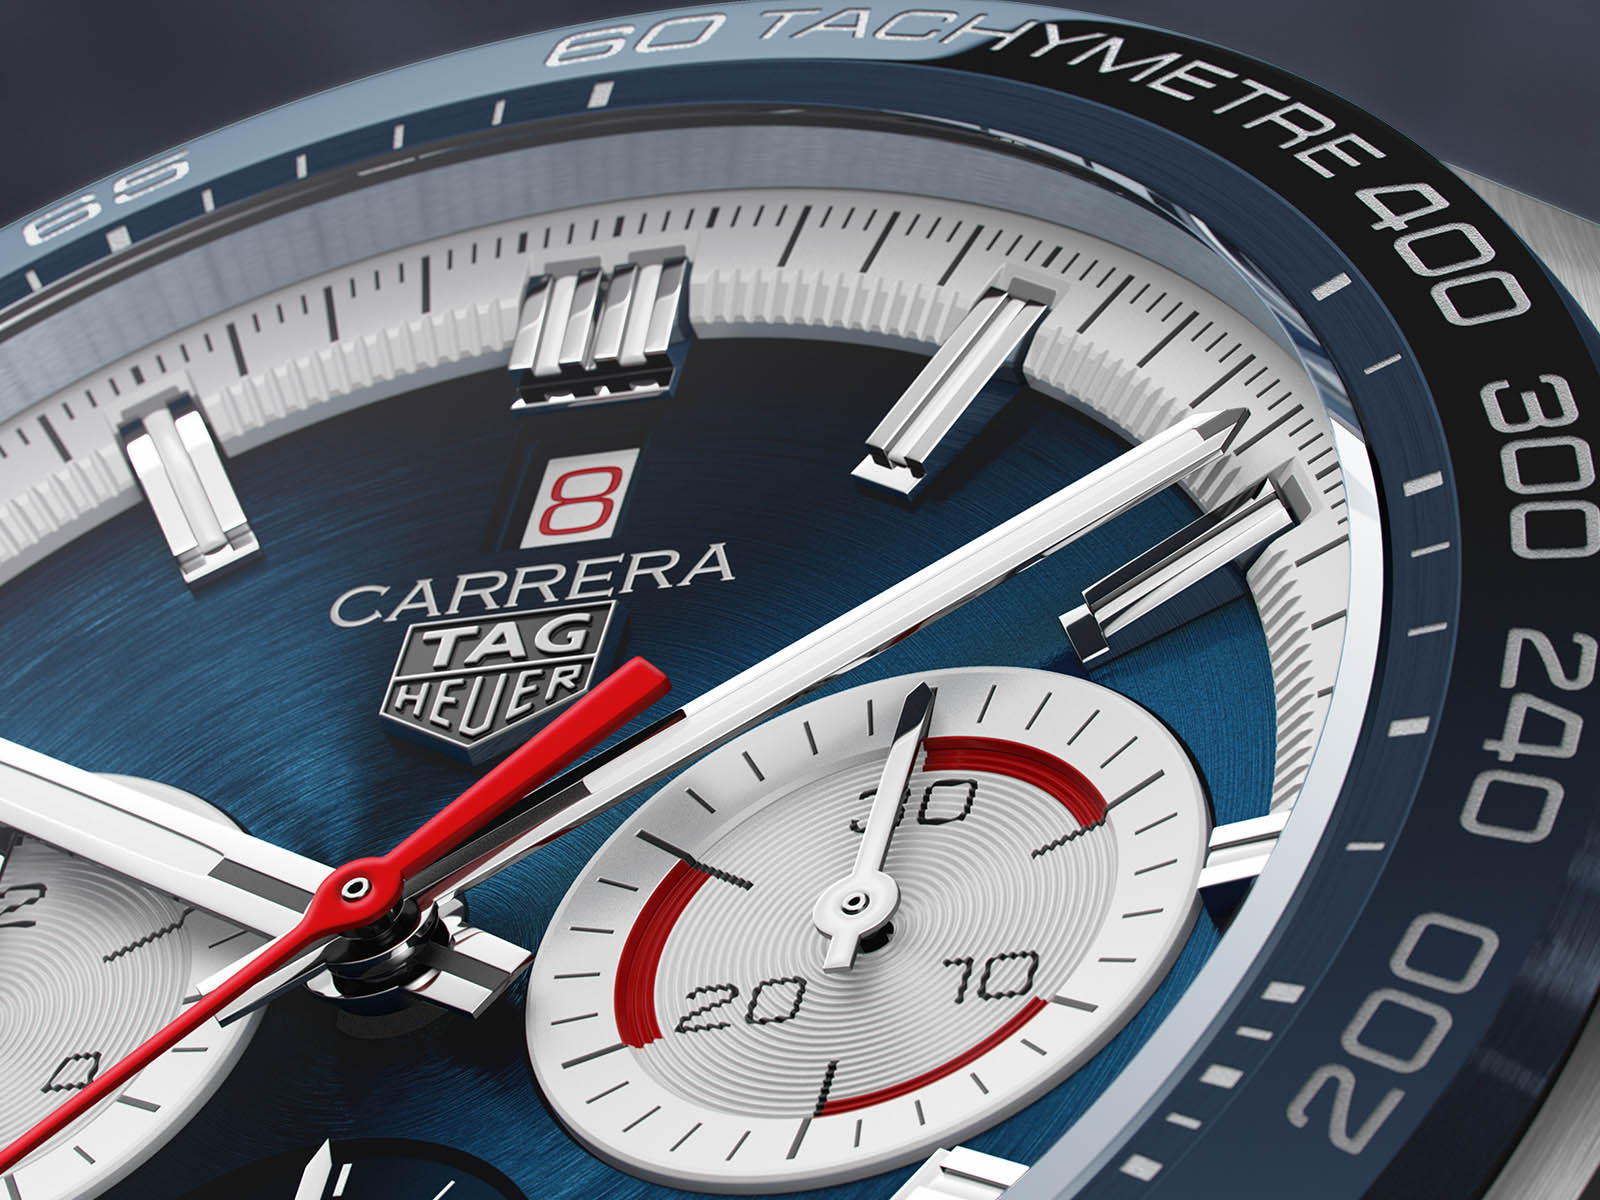 cbn2a1e-ba0643-tag-heuer-carrera-sport-chronograph-160-years-special-edition-1.jpg